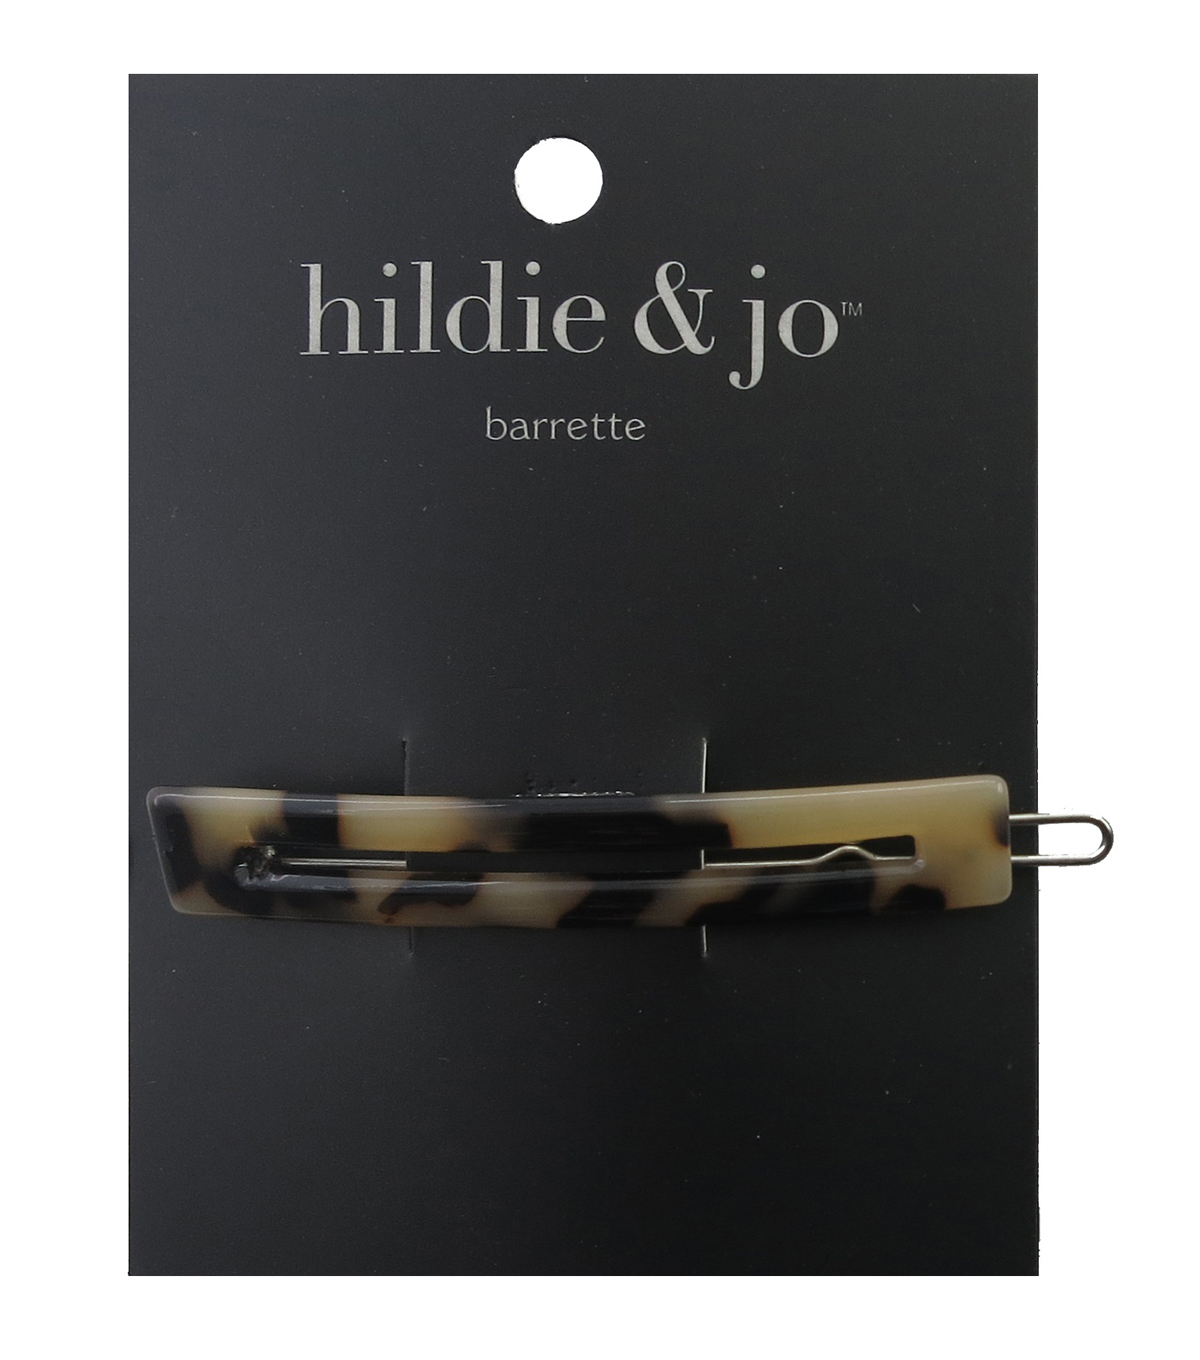 hildie & jo Open Rectangle Barrette-Tortoise Shell